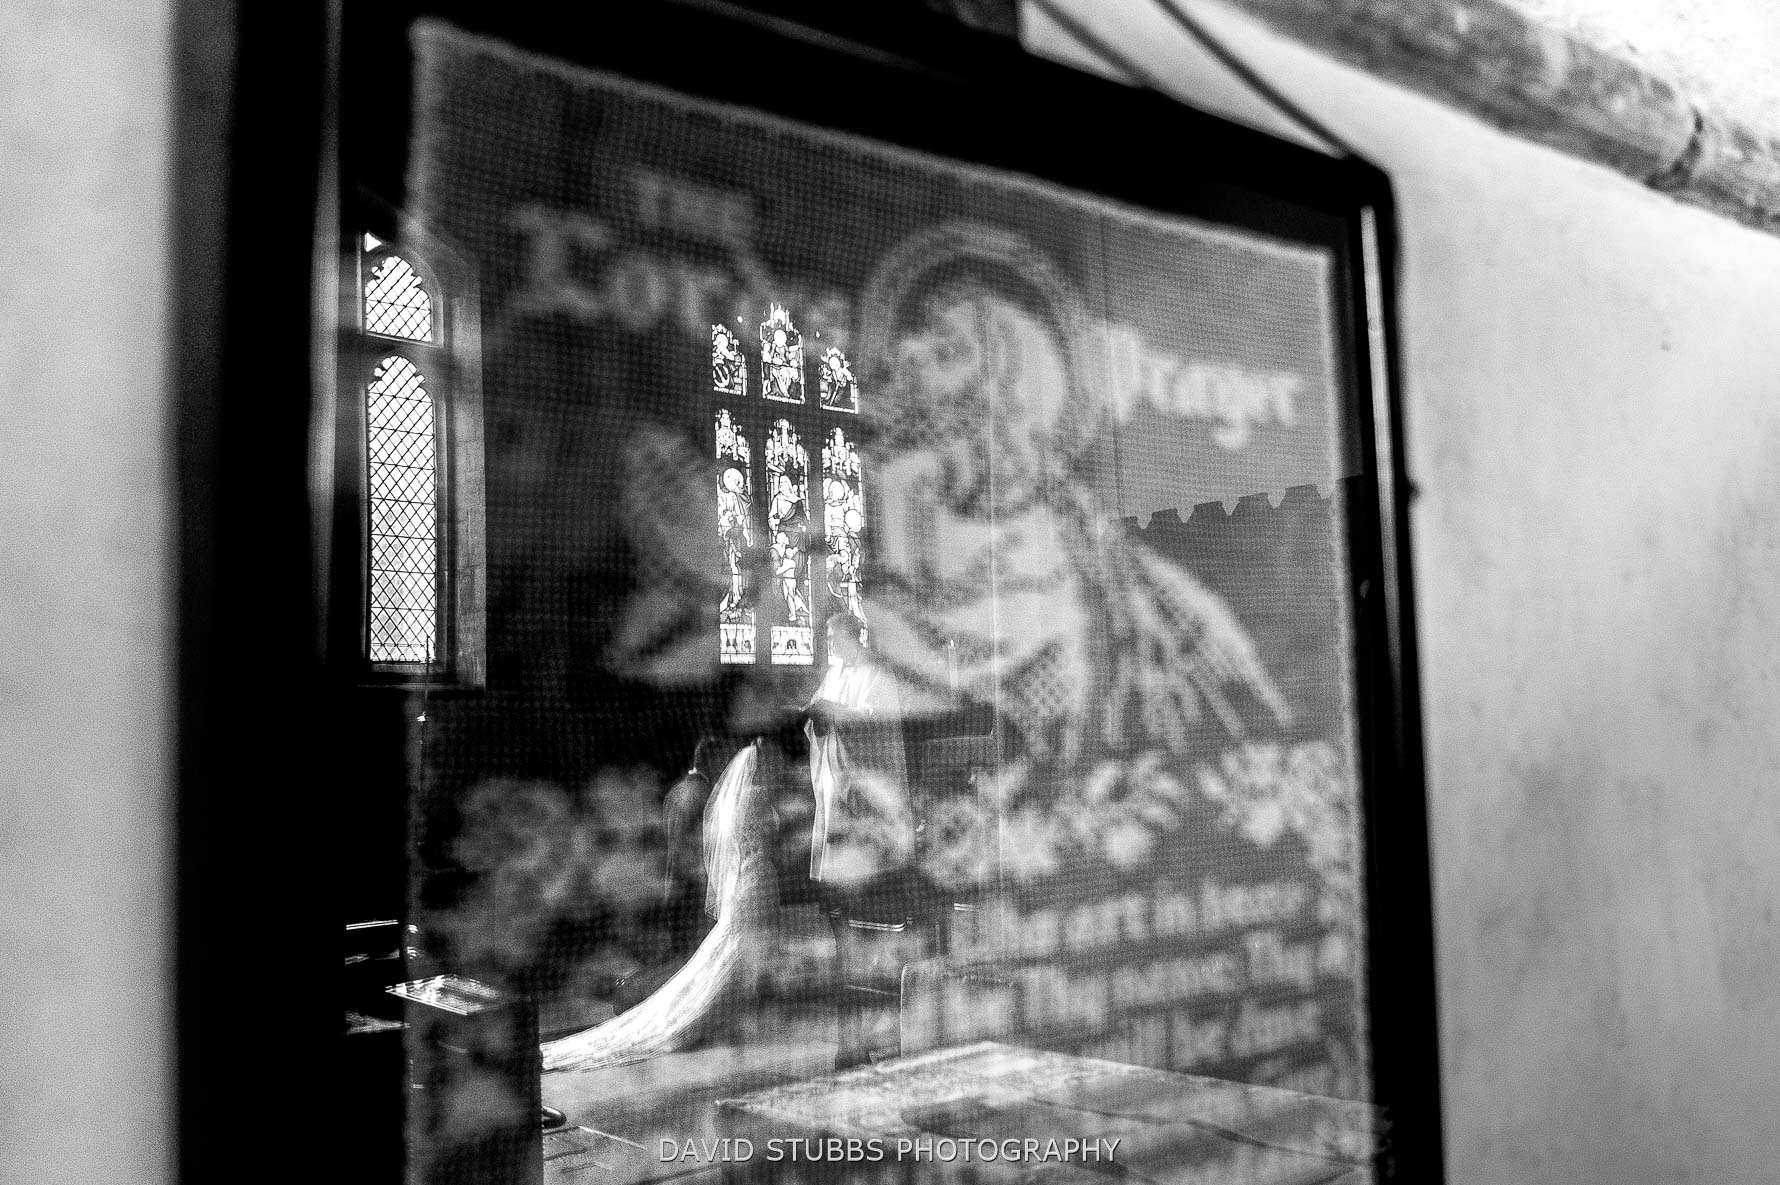 prayer and reflection in frame